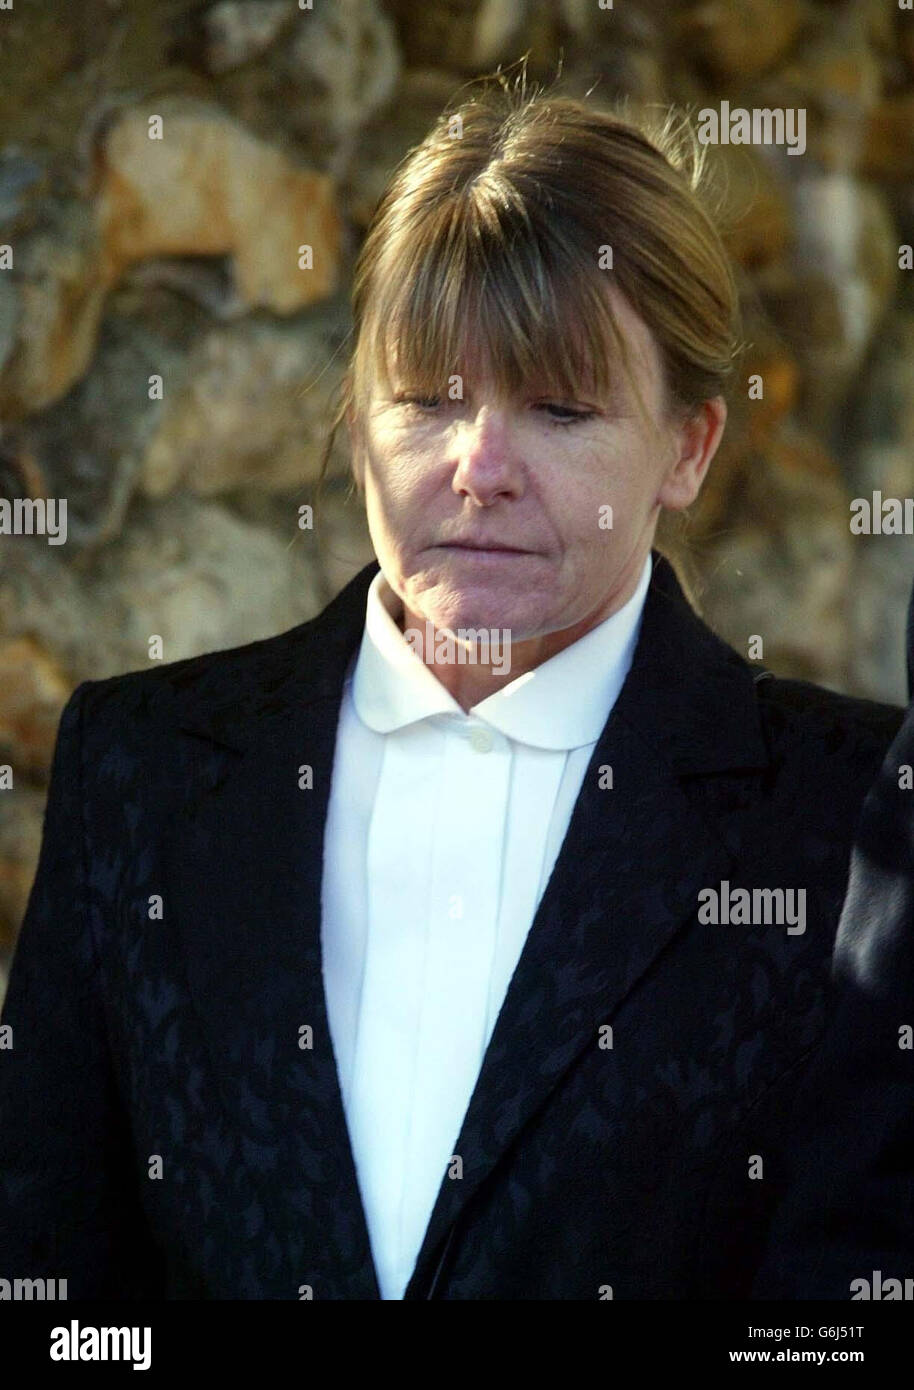 Mary Kyne suing Jim Davidson - Stock Image